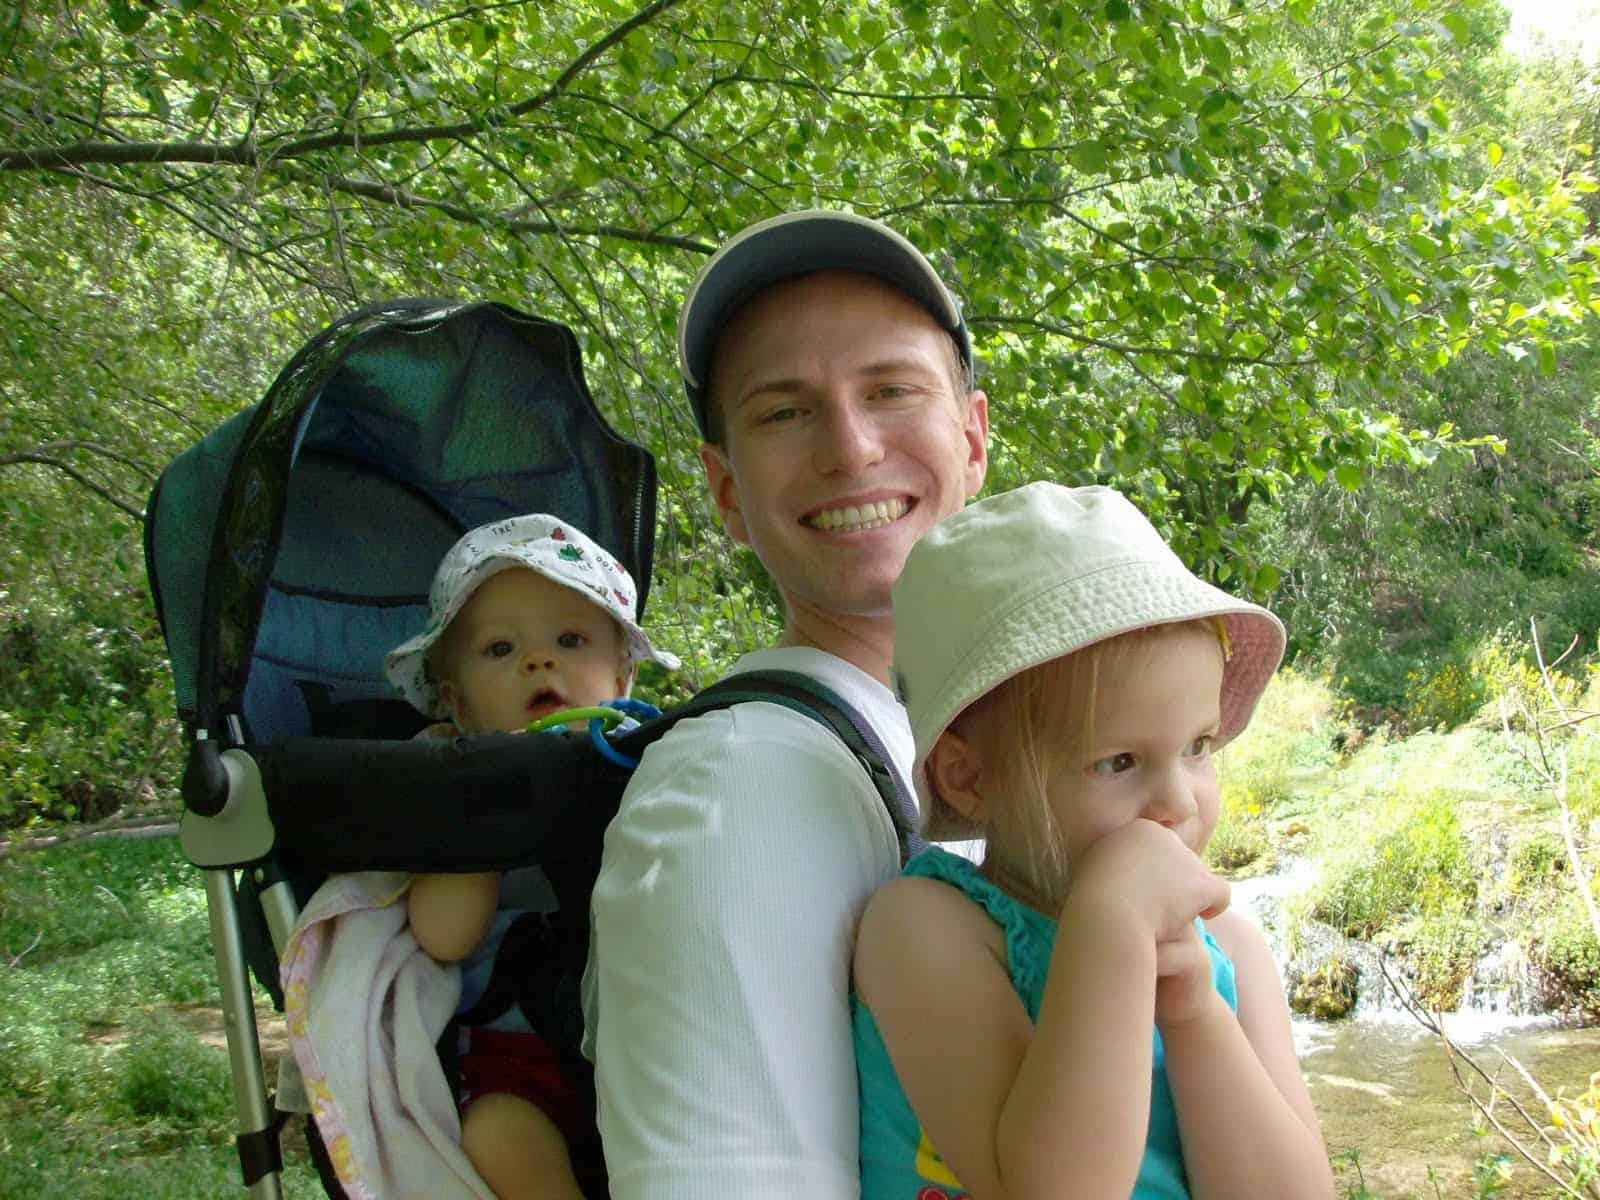 Wearing hats for sun protection is important when hiking with kids.